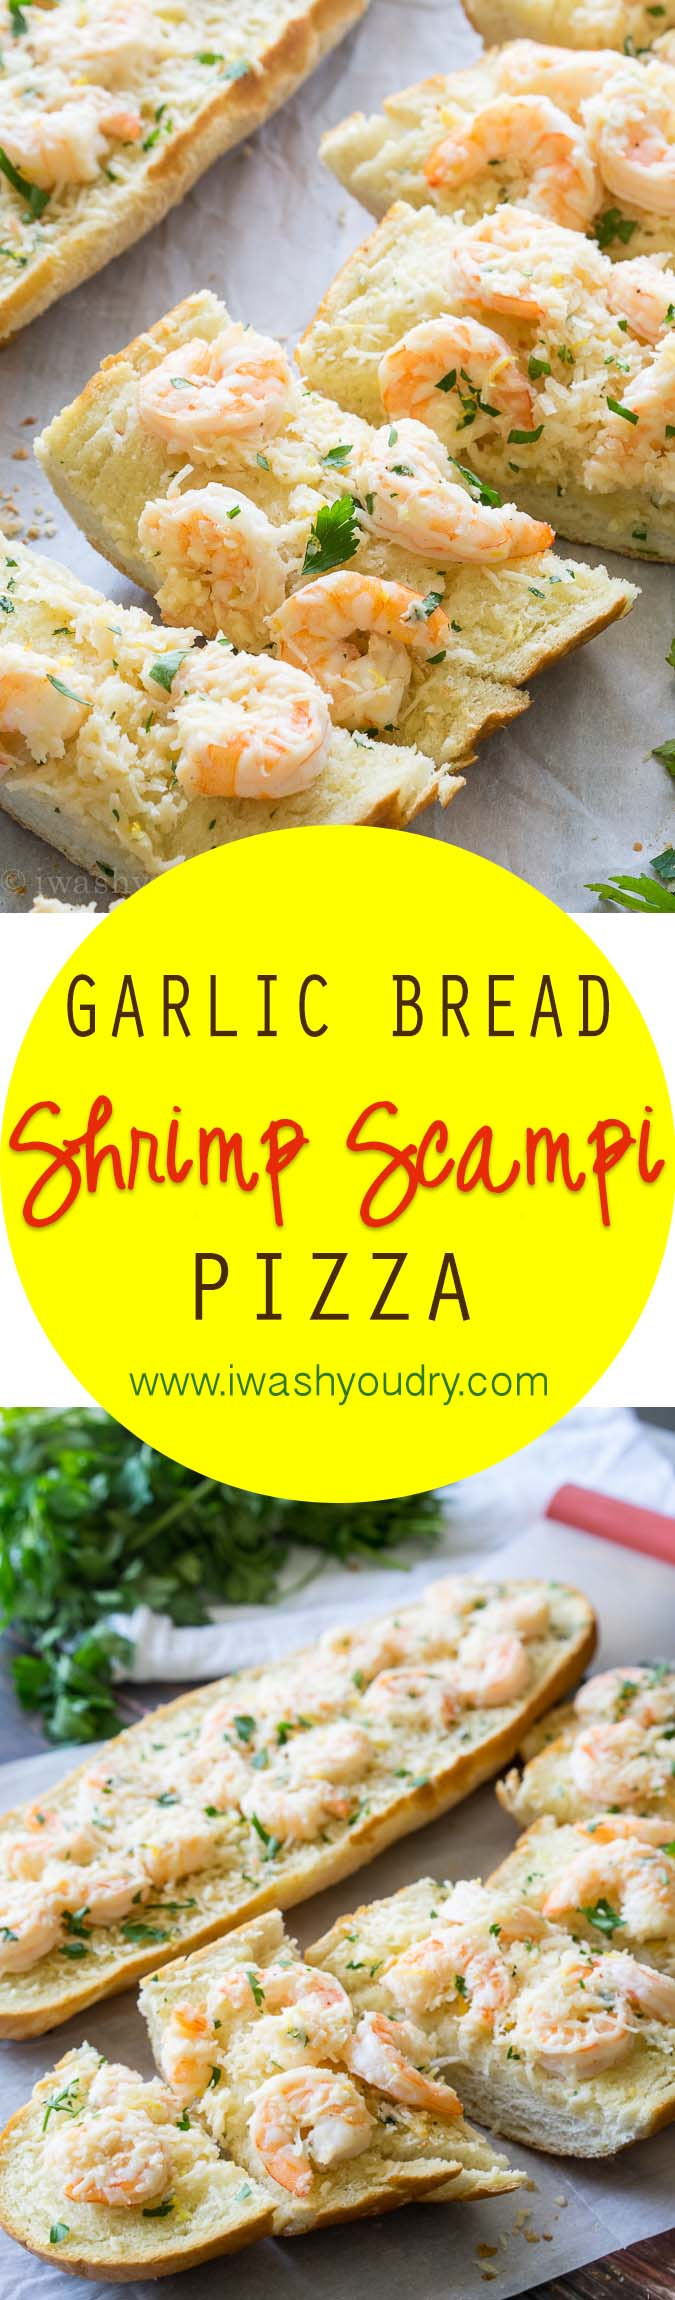 This quick and easy weeknight dinner is a family favorite! We love the Shrimp Scampi on top of the garlic bread! So good!